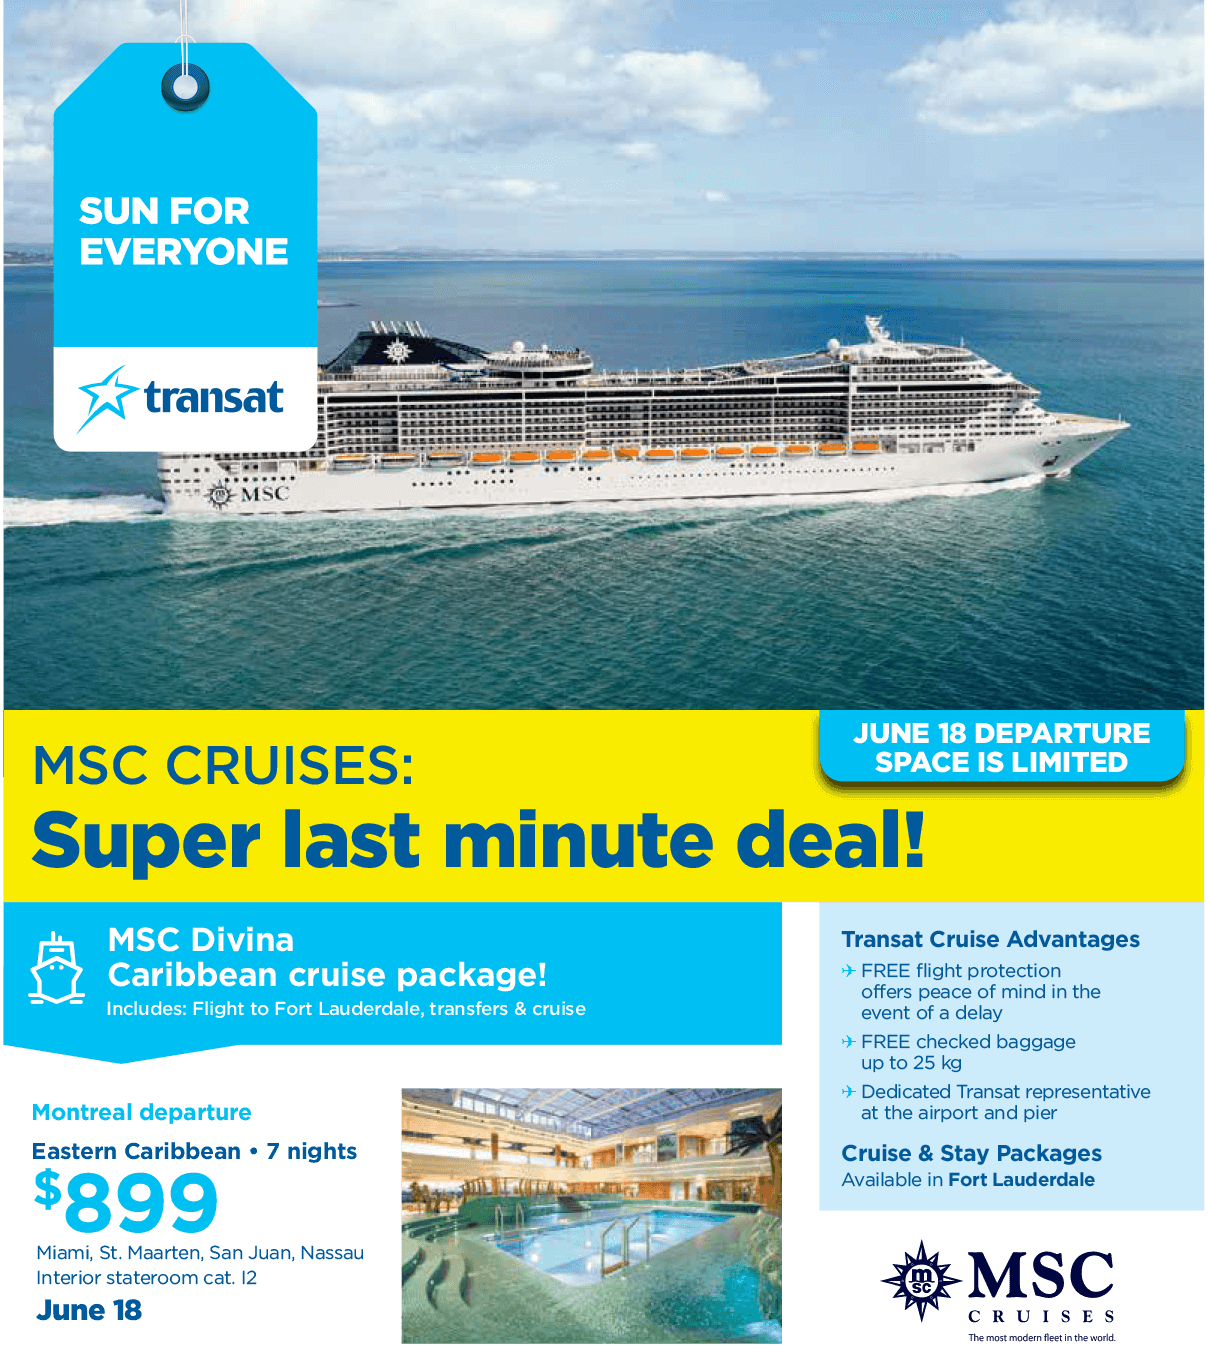 MSC Cruises - Super last minute deals flyer